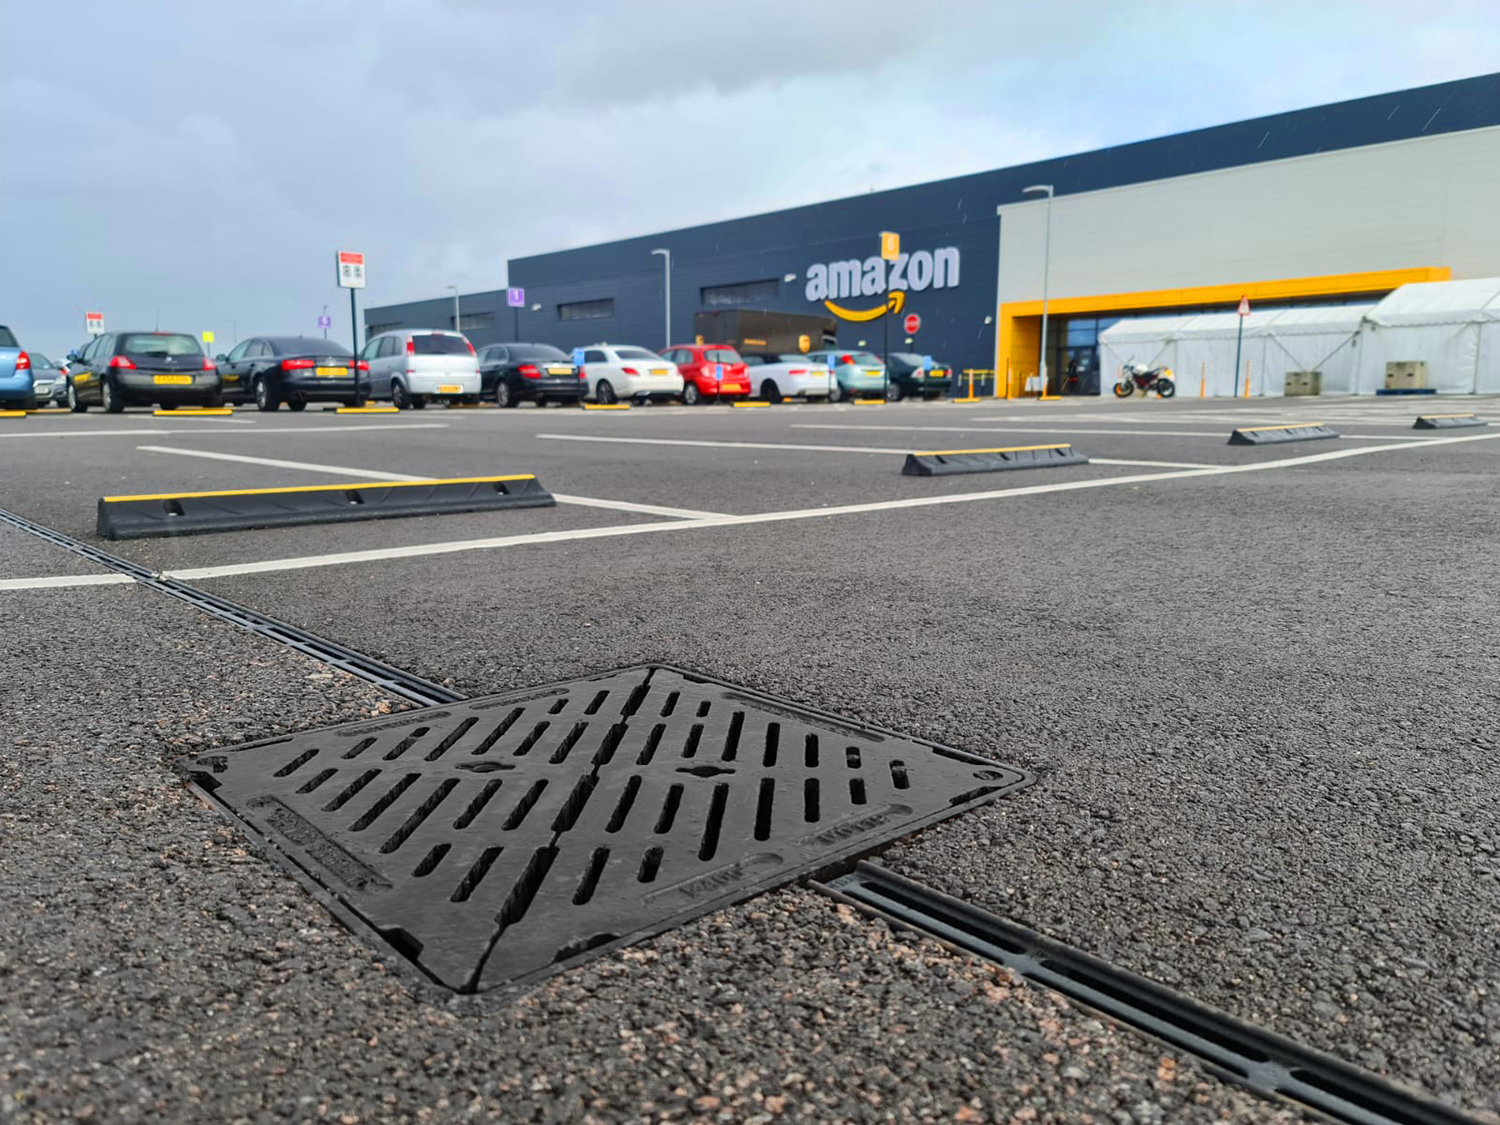 Gatic Slotdrain delivers prime service at Amazon distribution centre in Kent